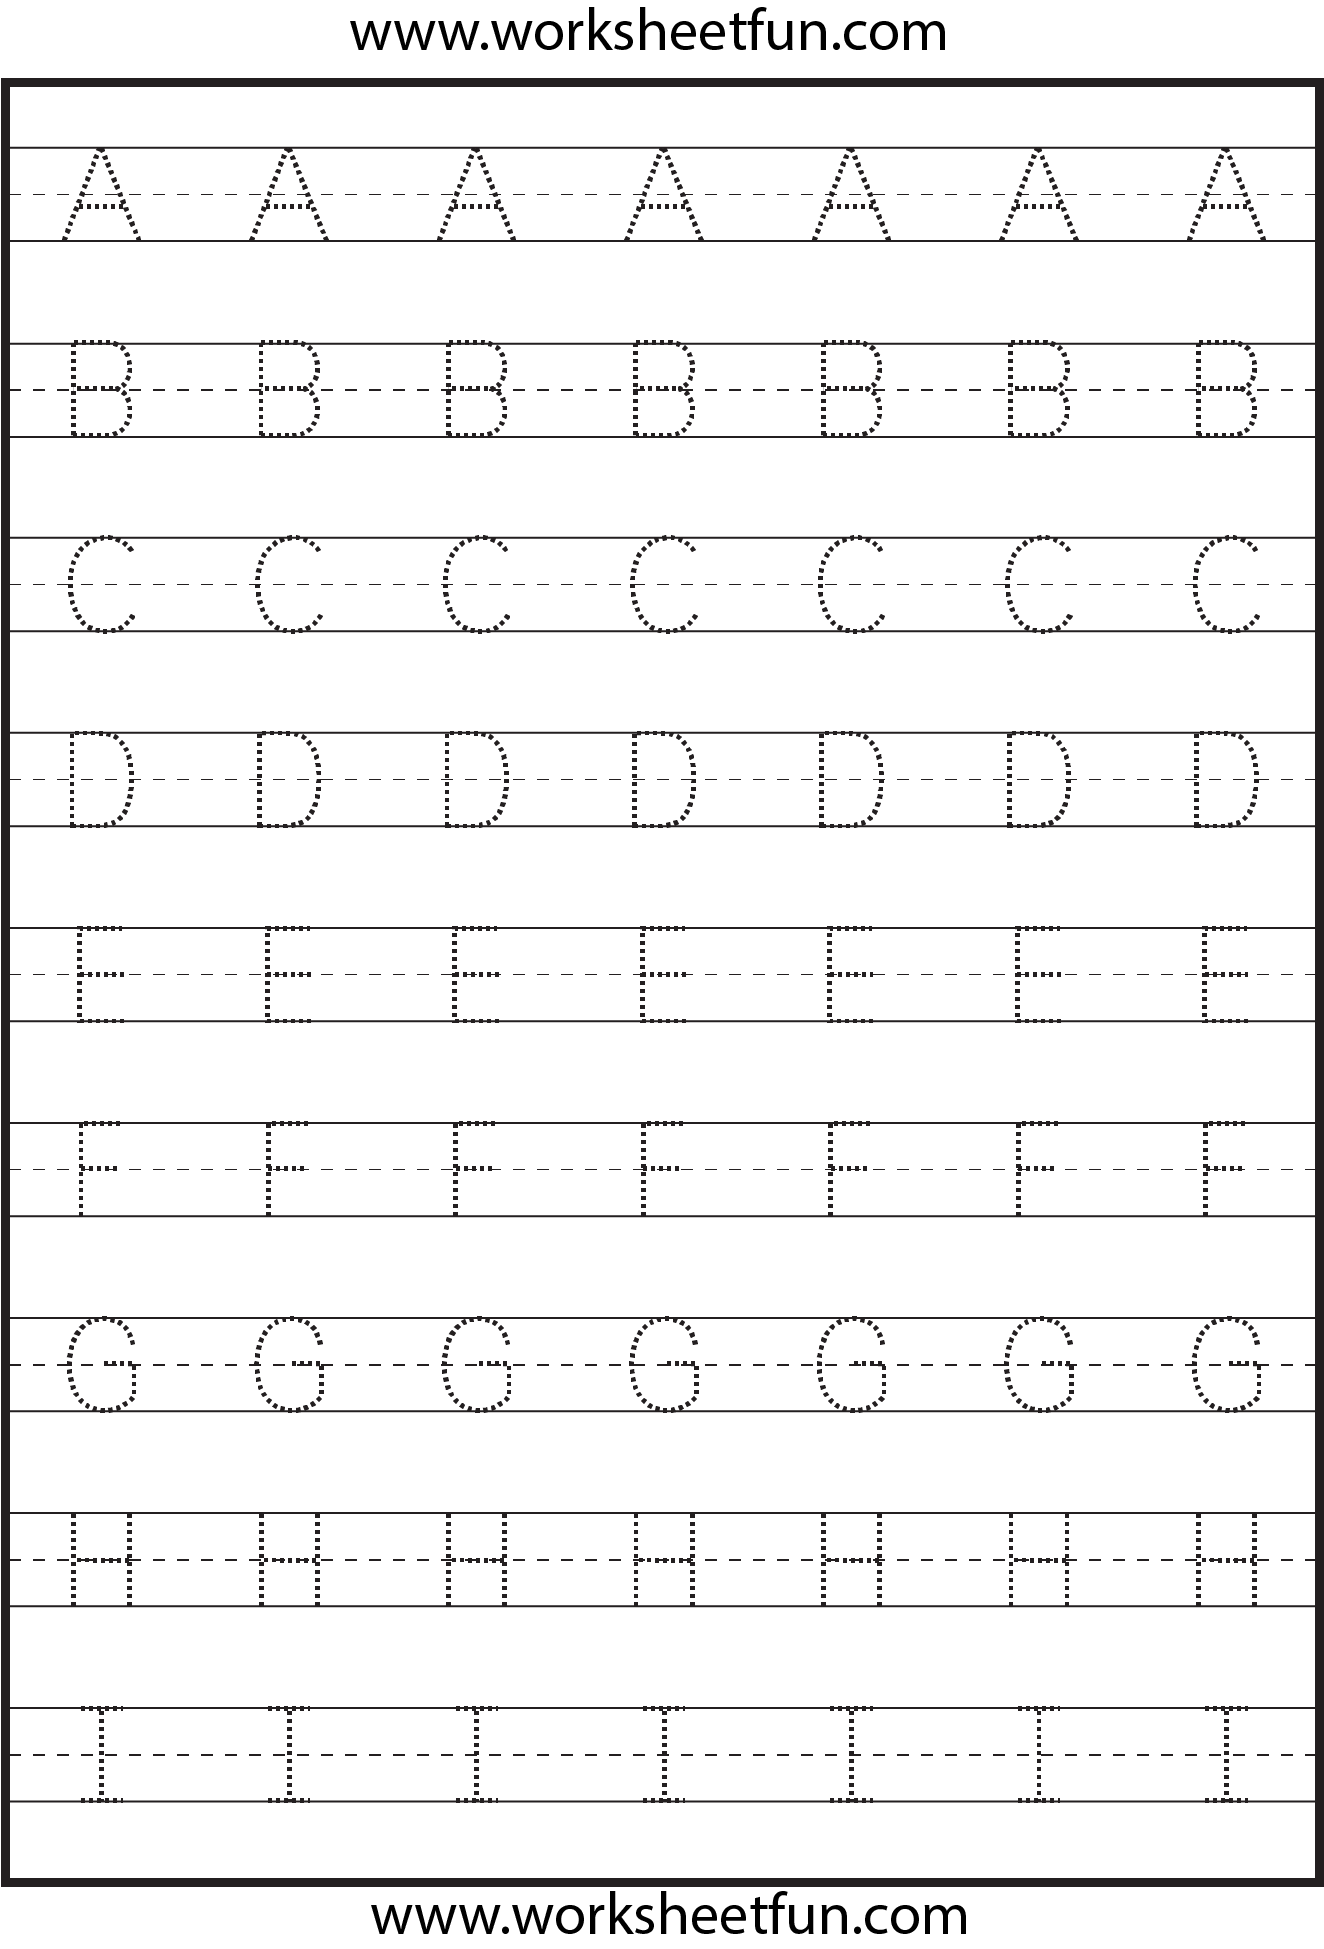 Worksheet Alphabet Writing Worksheets tracing uppercase letters capital 3 worksheets letter tracing